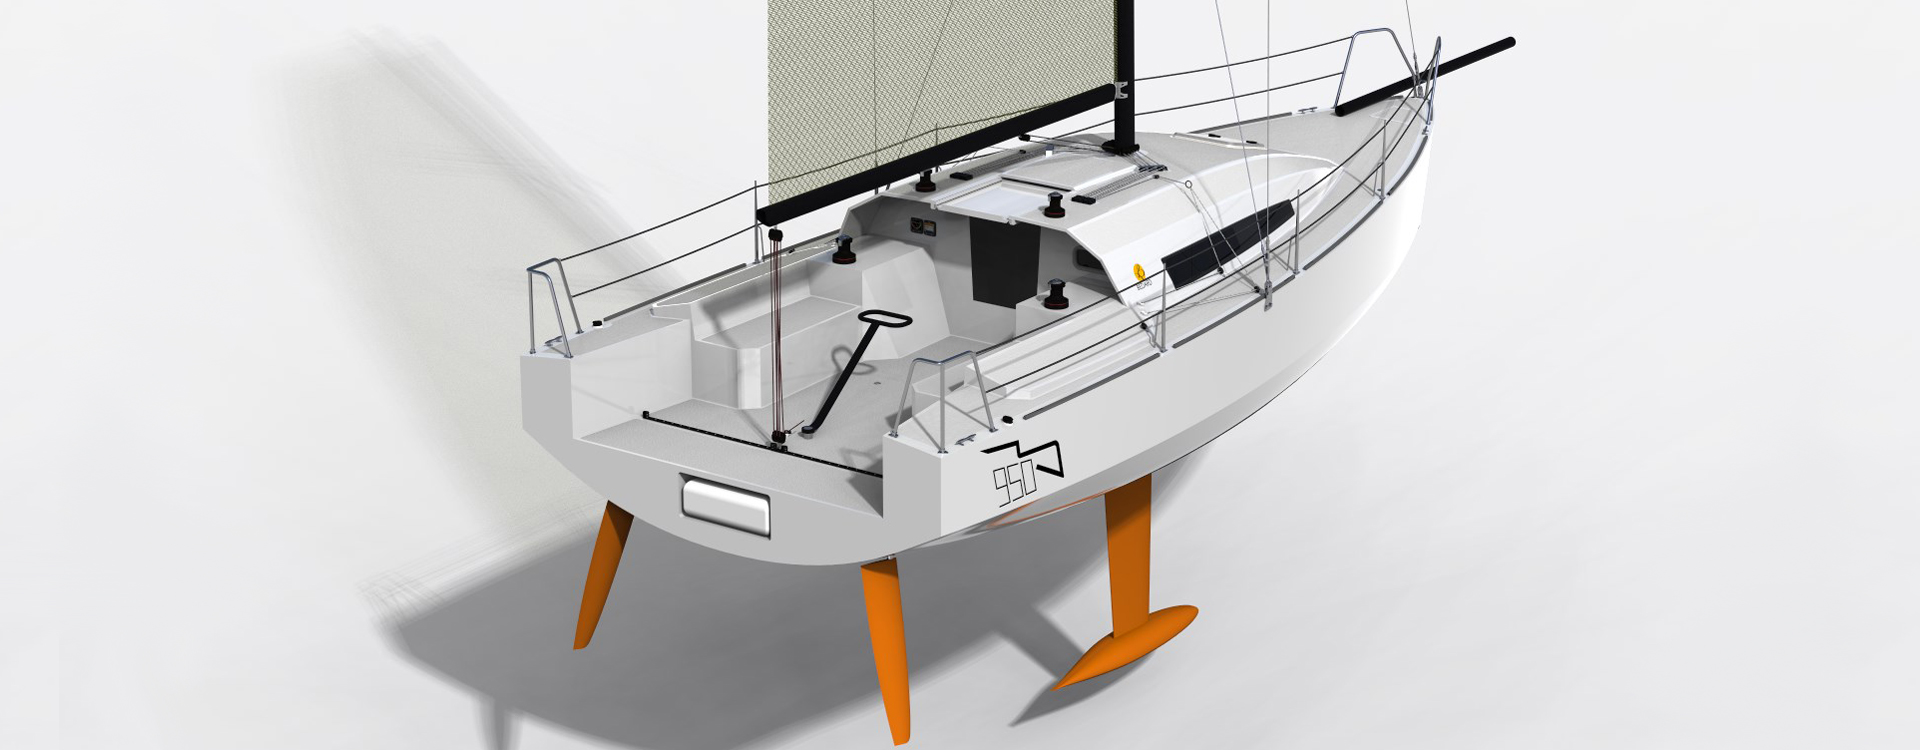 Buzzard 950 racing sailboat | Bedard Yacht Design